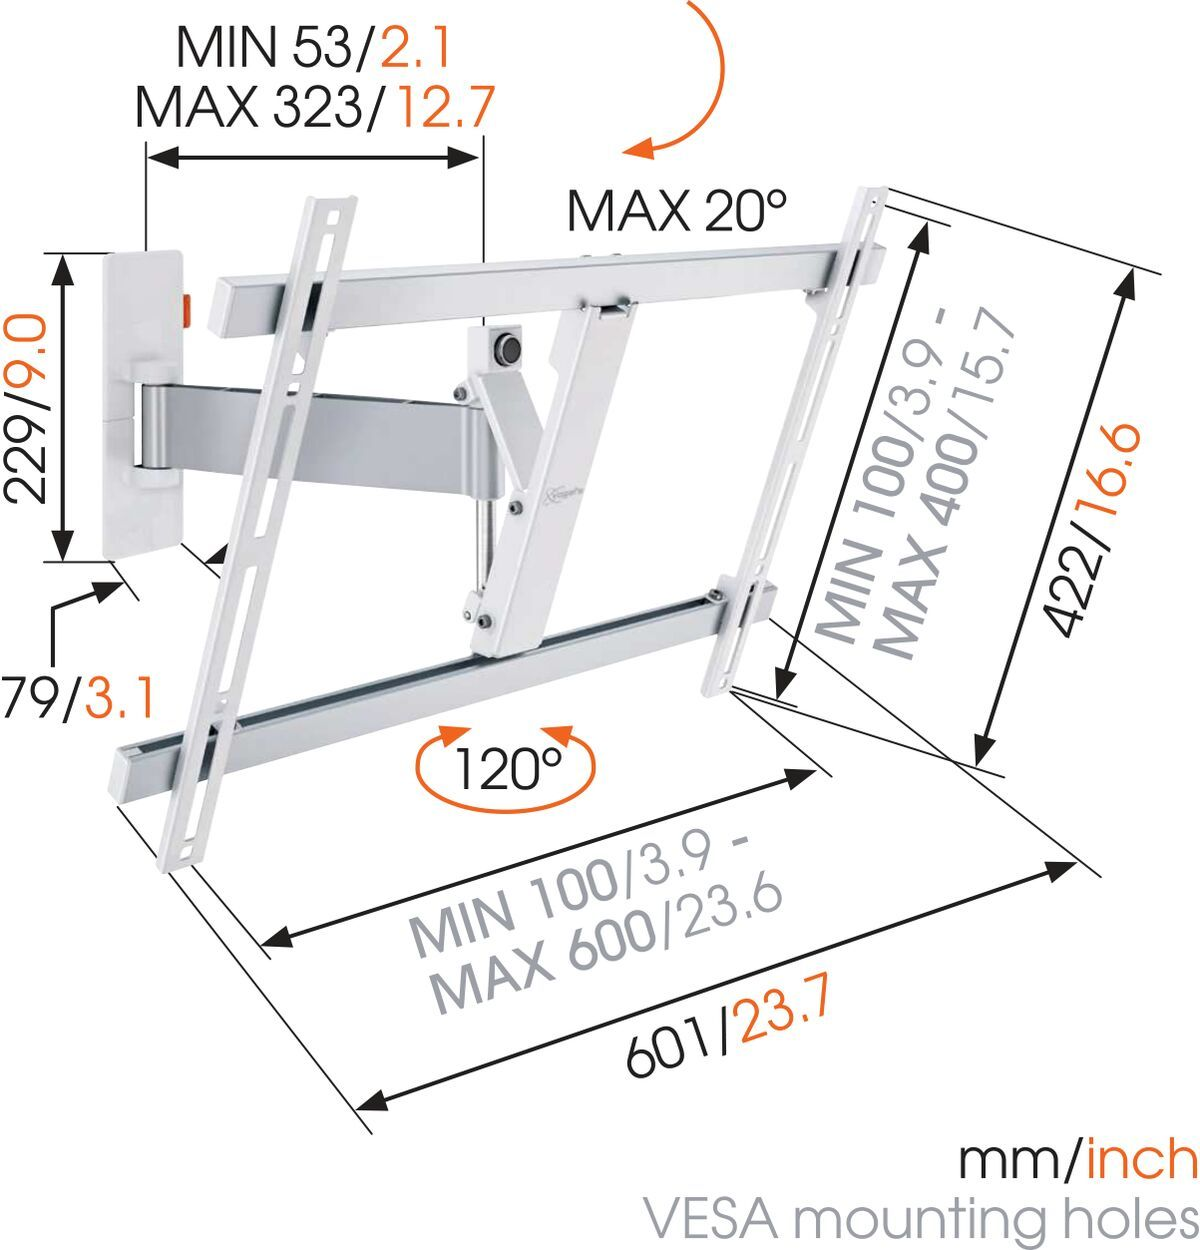 Vogel's WALL 2325 Full-Motion TV Wall Mount (white) - Suitable for Motion (up to 120°) - Suitable for Tilt up to 20° - Suitable for Dimensions